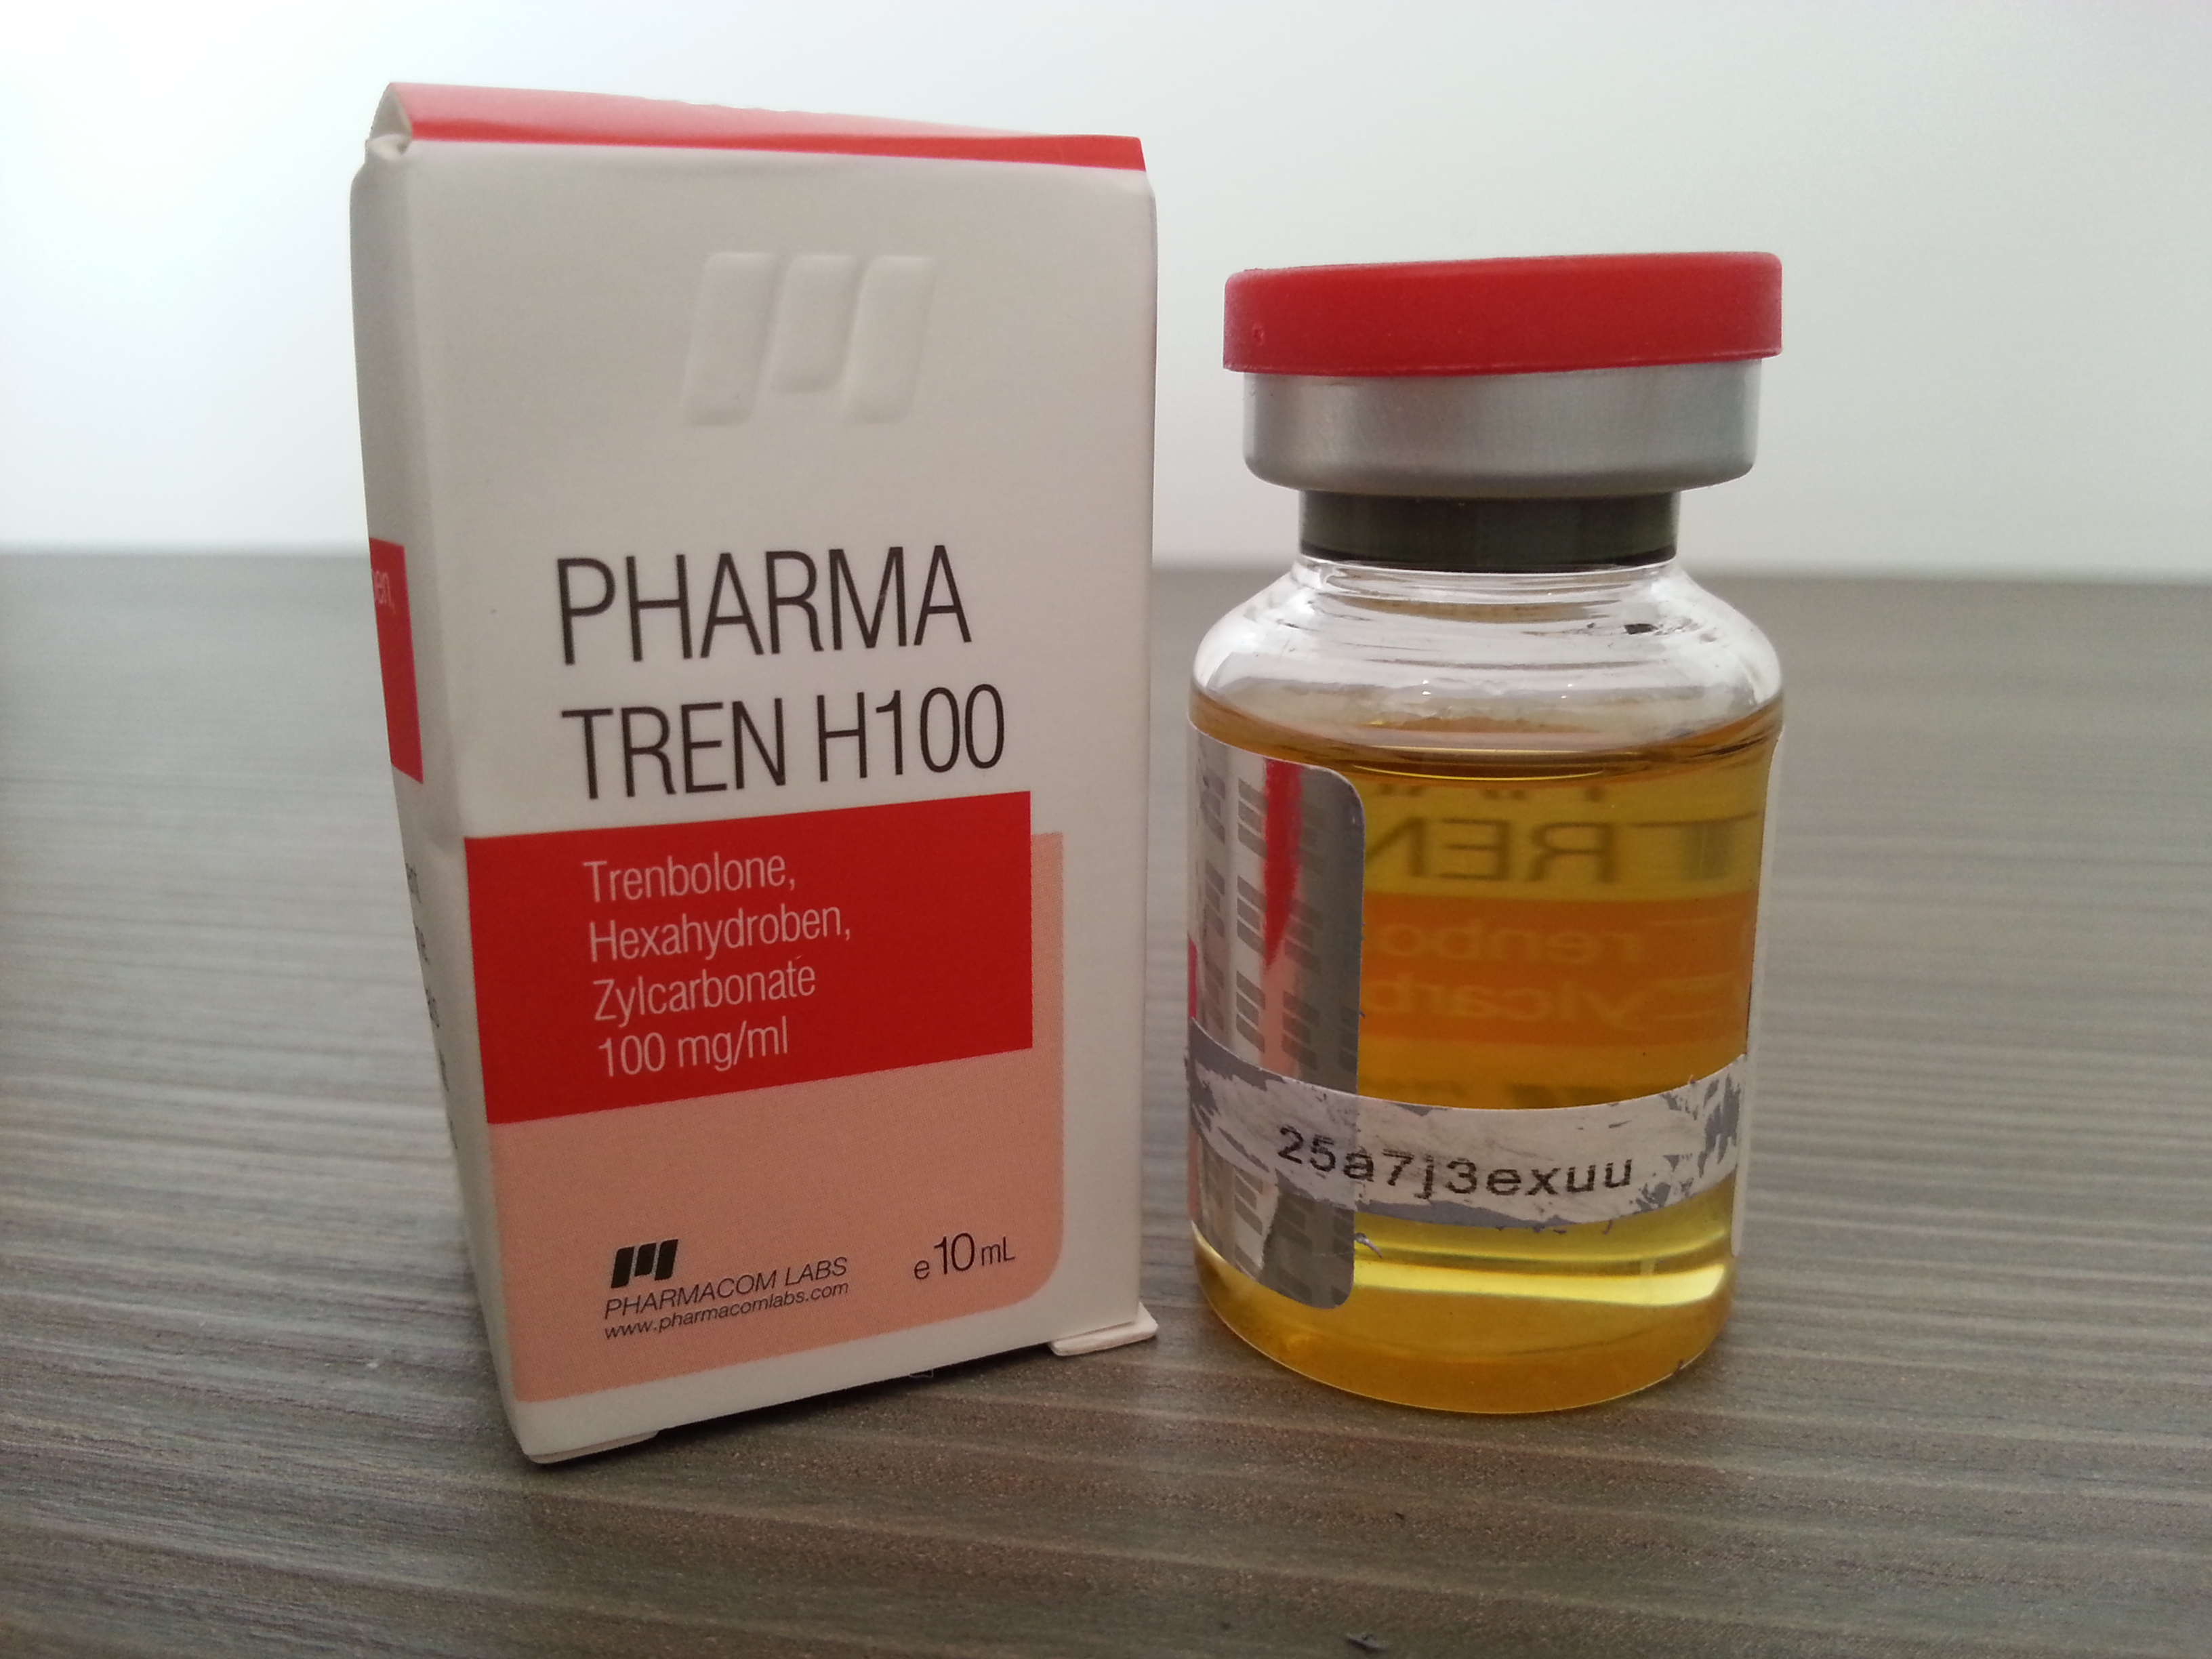 Pharmacom Labs PHARMA Tren H100 Lab Test Results - Anabolic Lab